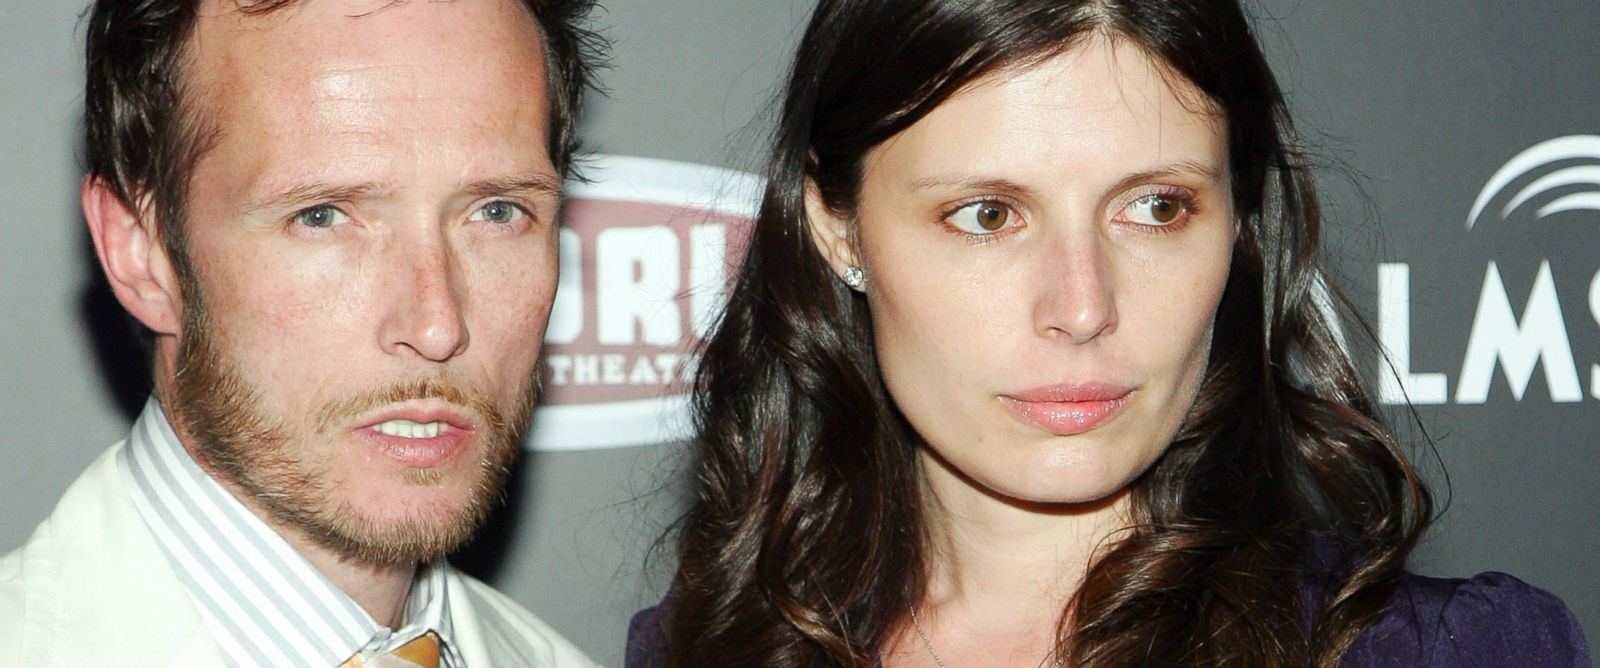 PHOTO: Musician Scott Weiland and his wife Mary Forsberg arrive at a concert at the Palms Casino Resort, April 21, 2007 in Las Vegas.